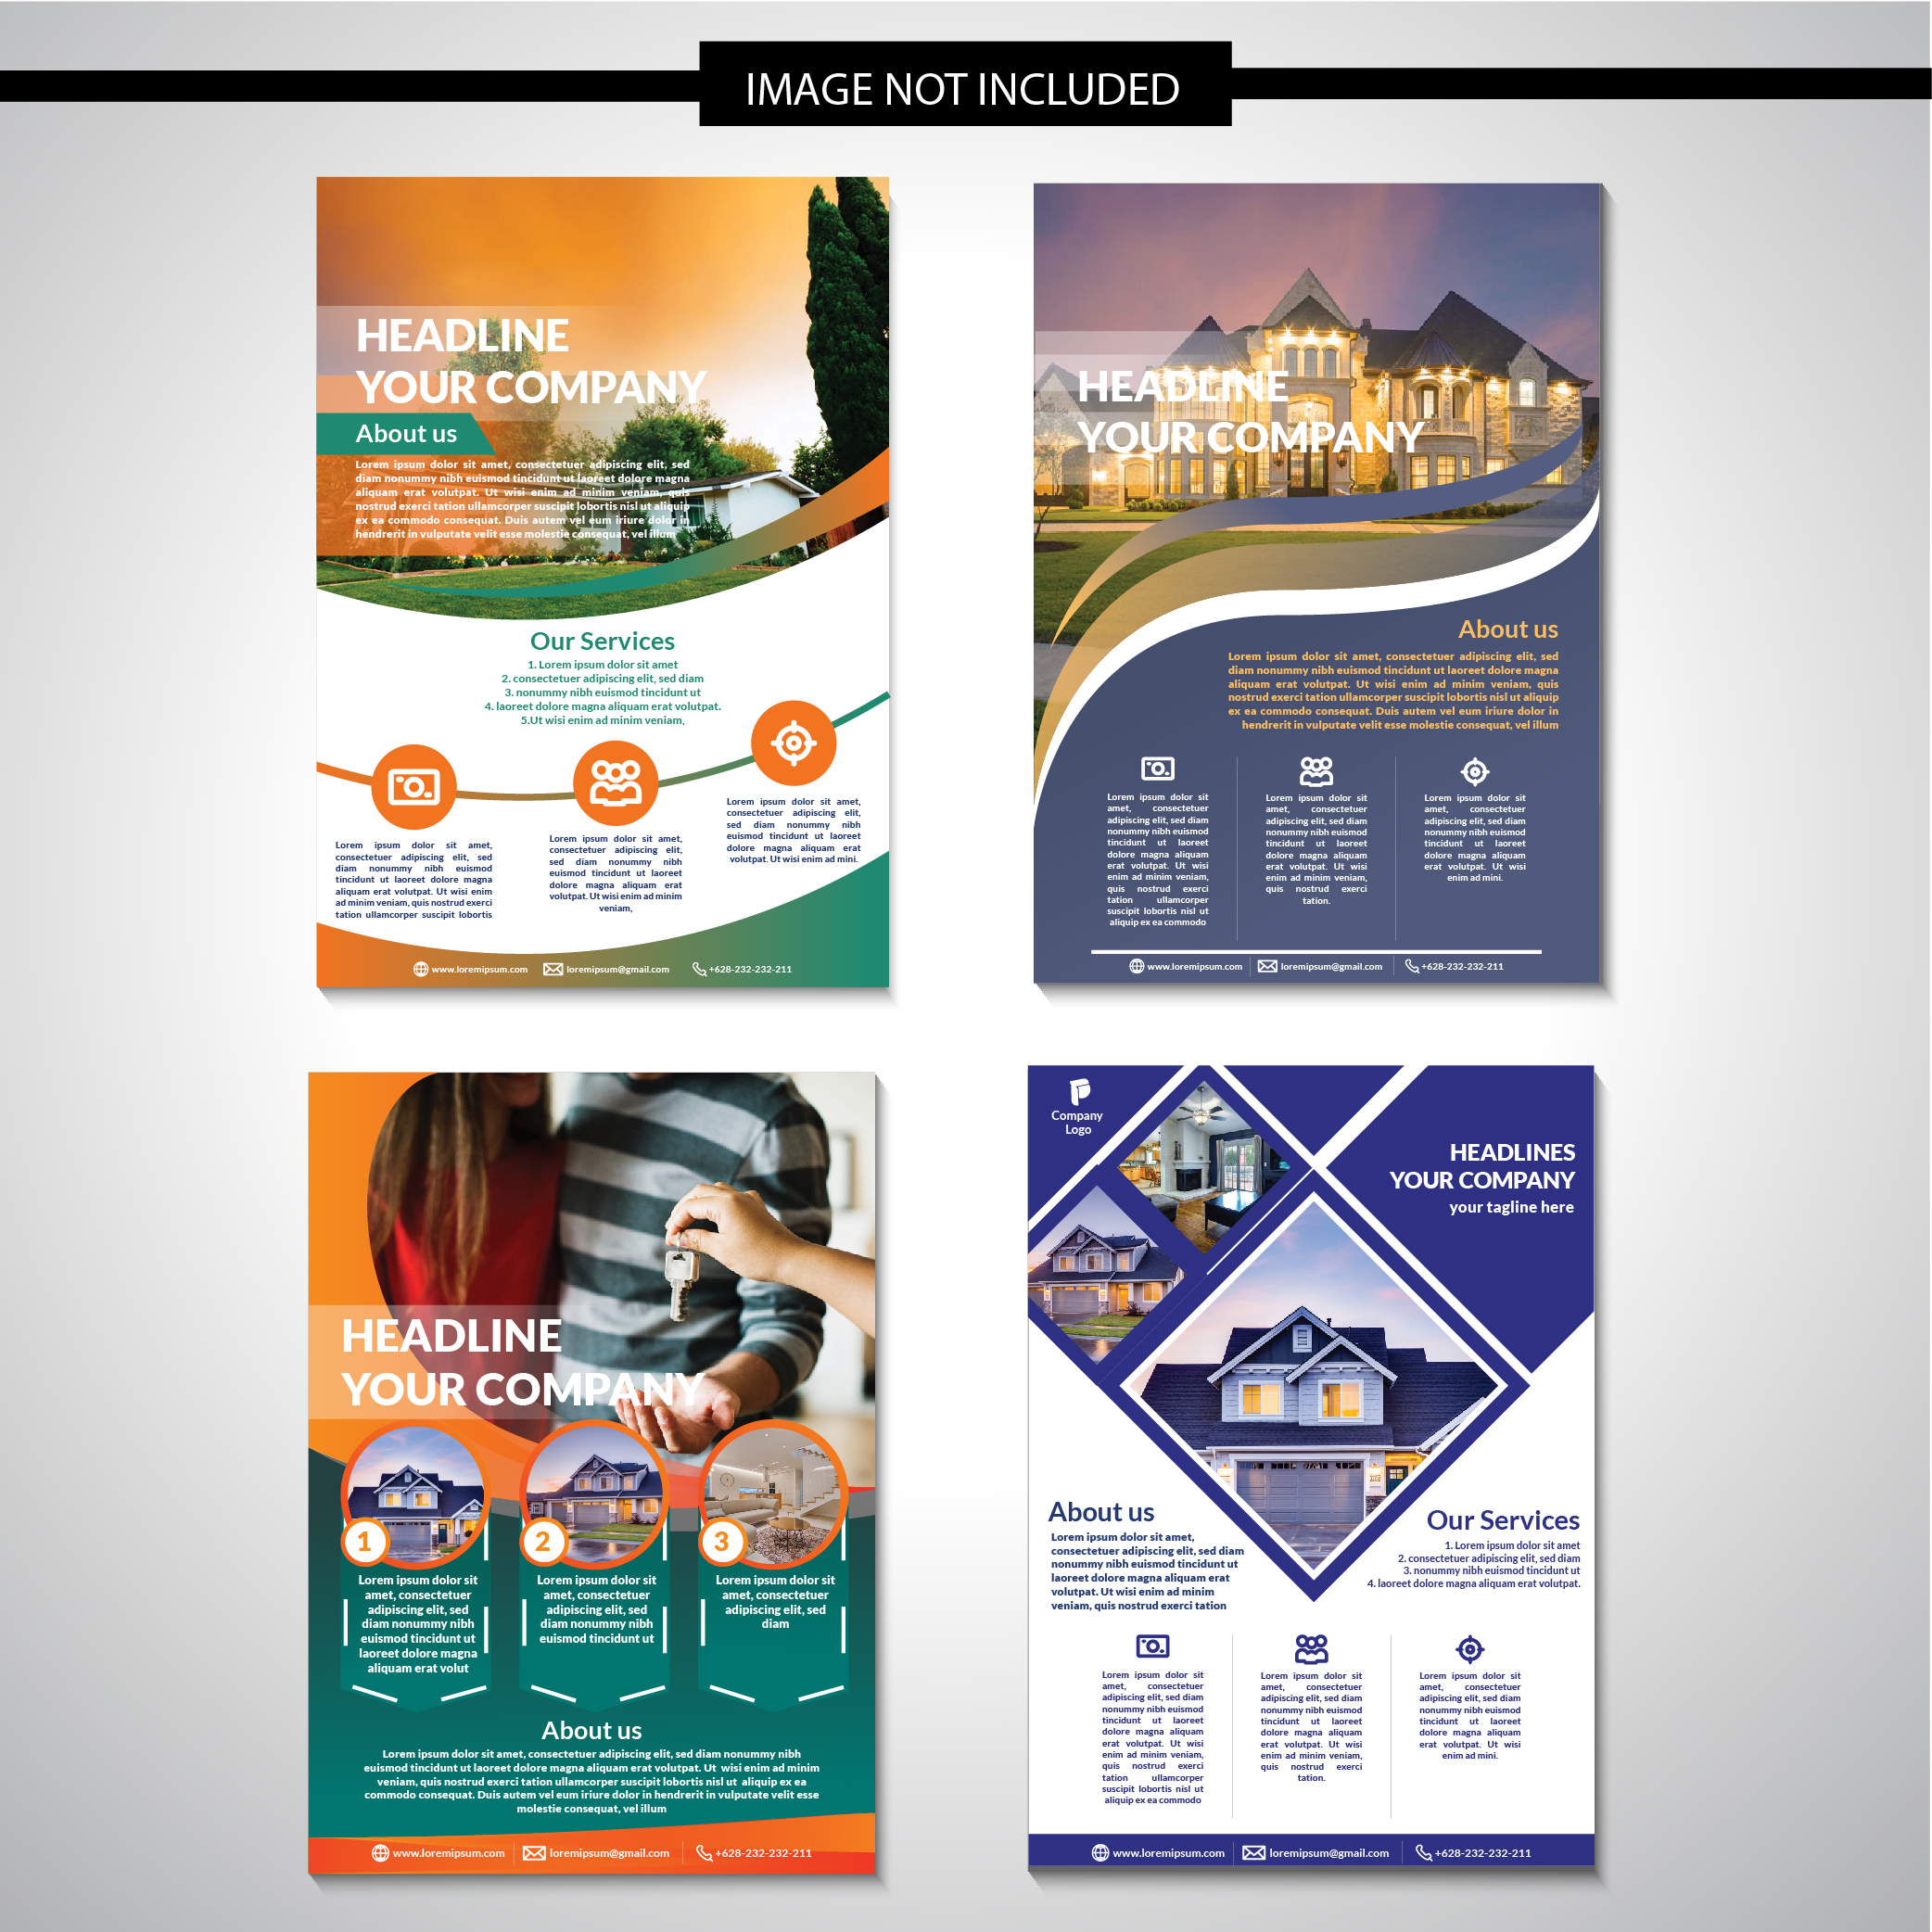 Graphic Design Courses in Merseyside